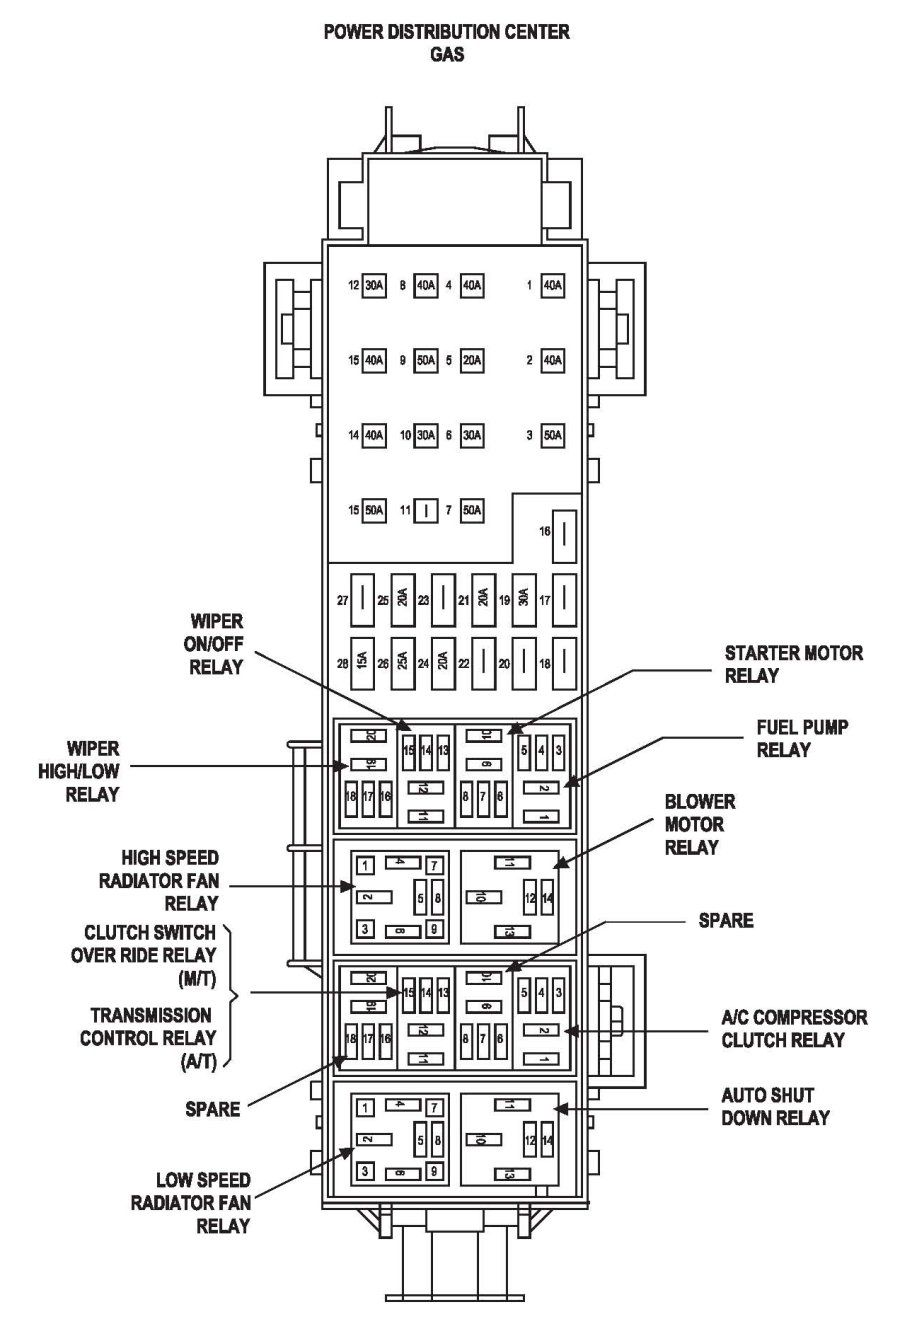 cj7 replacement fuse box wiring diagram forward cj7 replacement fuse box [ 900 x 1336 Pixel ]